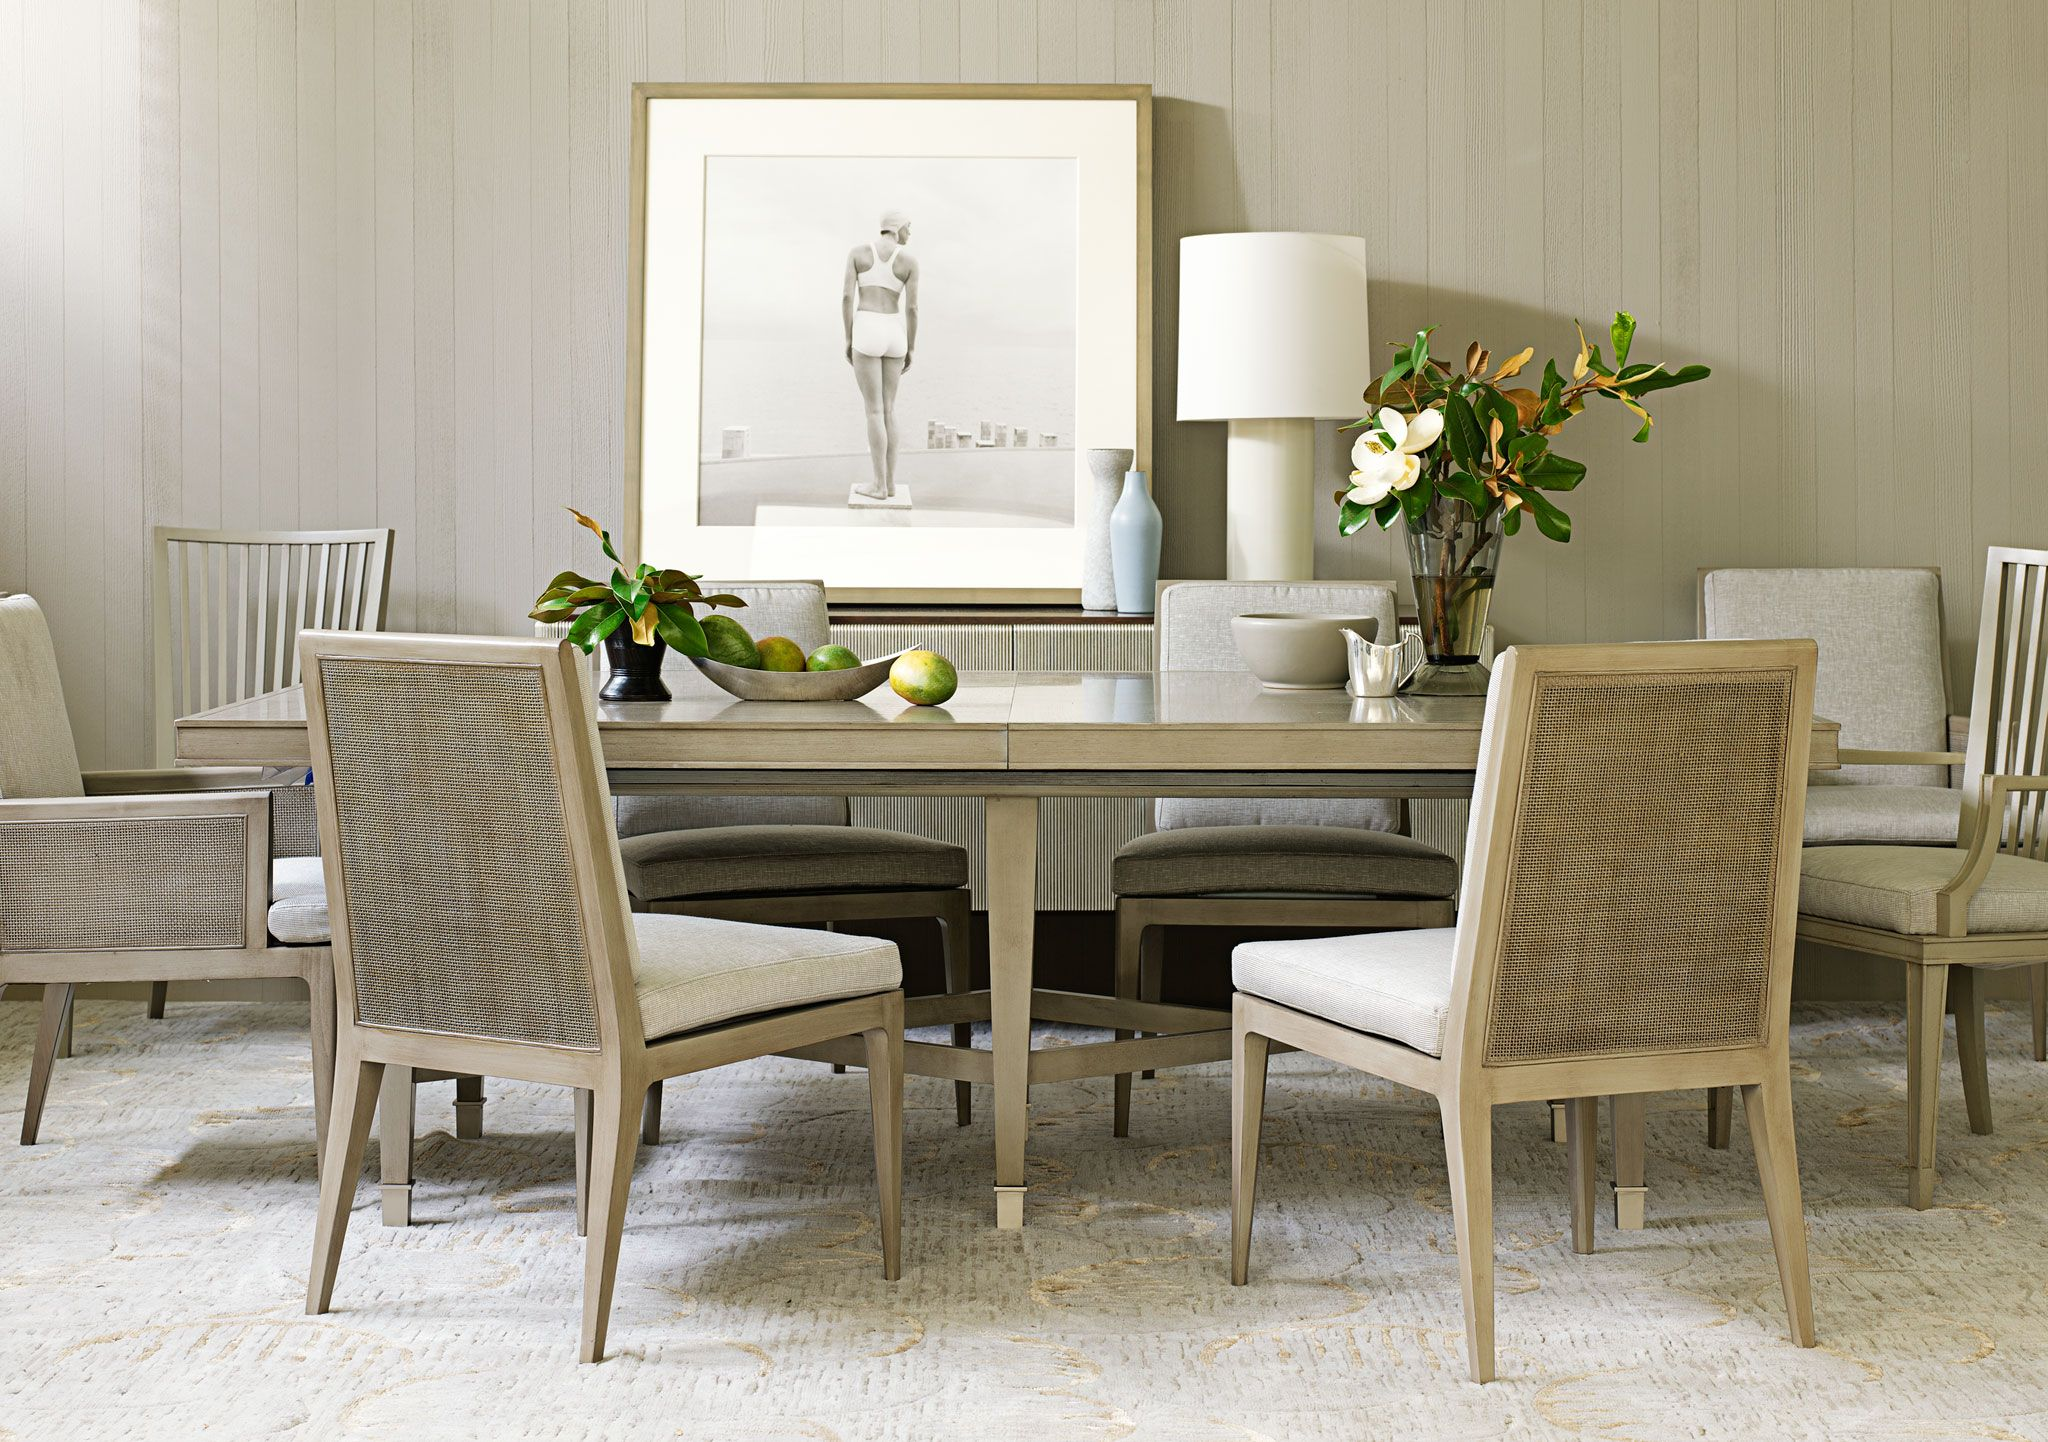 Furniture barbara barry dining rooms pinterest room konmari furniture barbara barry baker furnituredining room furnituredining chairsdining sxxofo